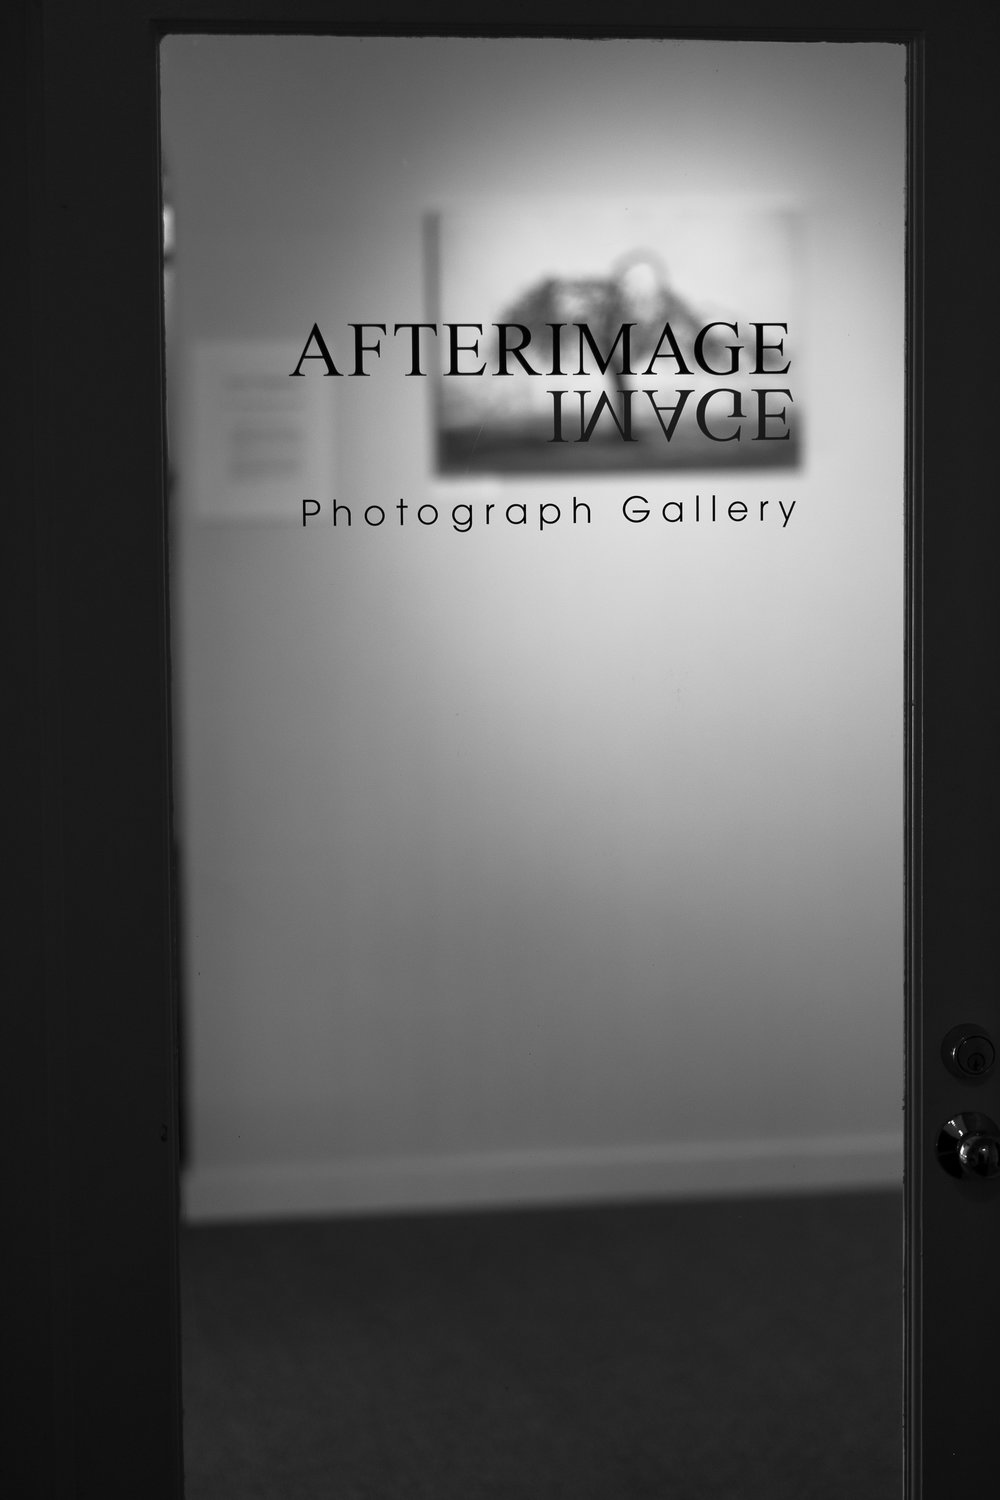 AFTERIMAGE GALLERY, Inc. 2613B Fairmount Street Dallas, TX 75201    Phone: (214) 871-9140 Hours: 10:00 a.m. to 5:00 p.m., Monday-Saturday